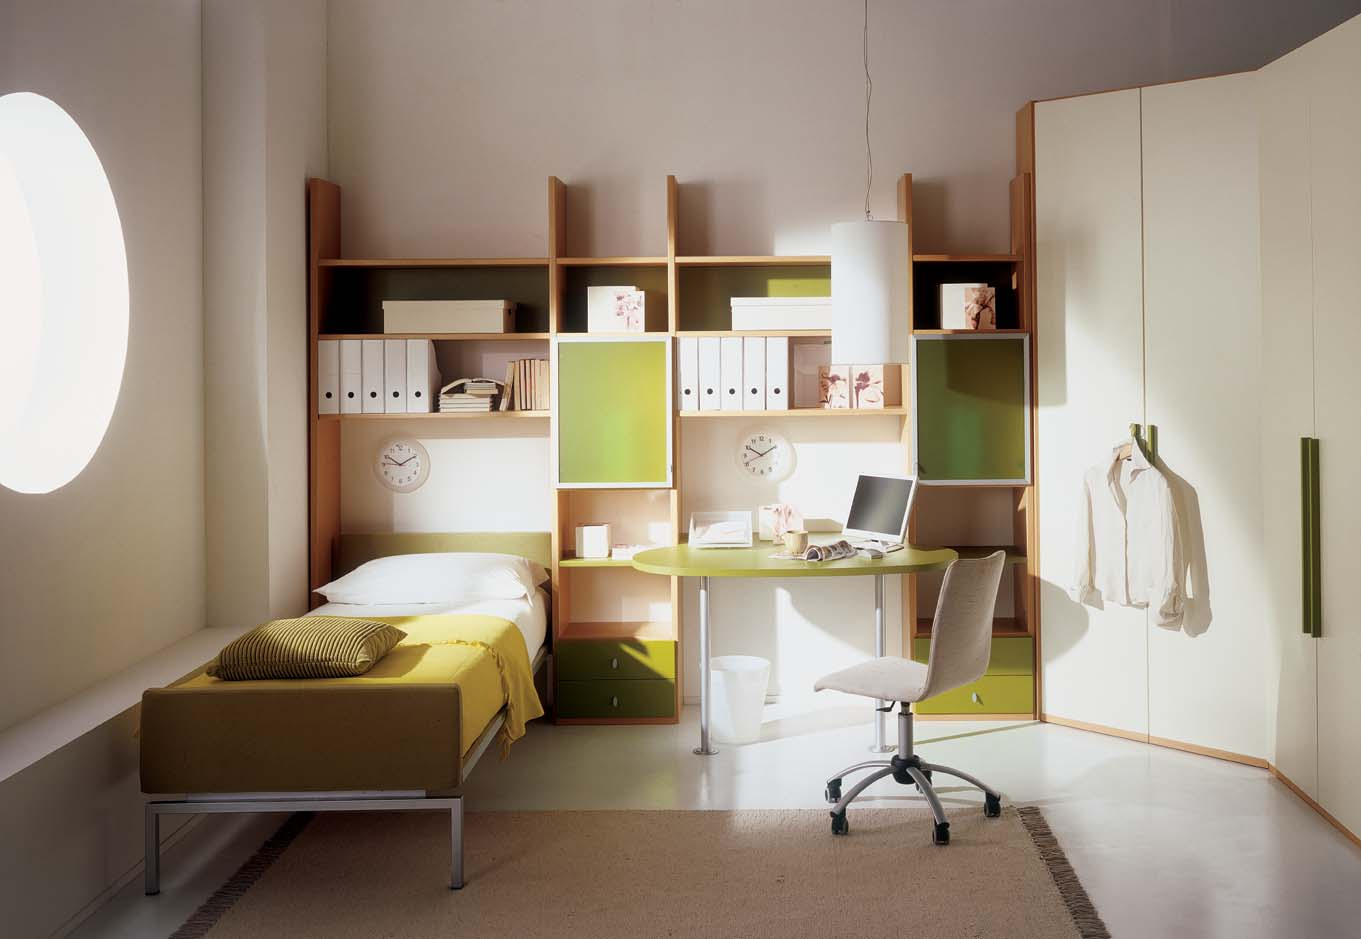 Planner Cameretta Study Table In Bedroom Home Design Inside